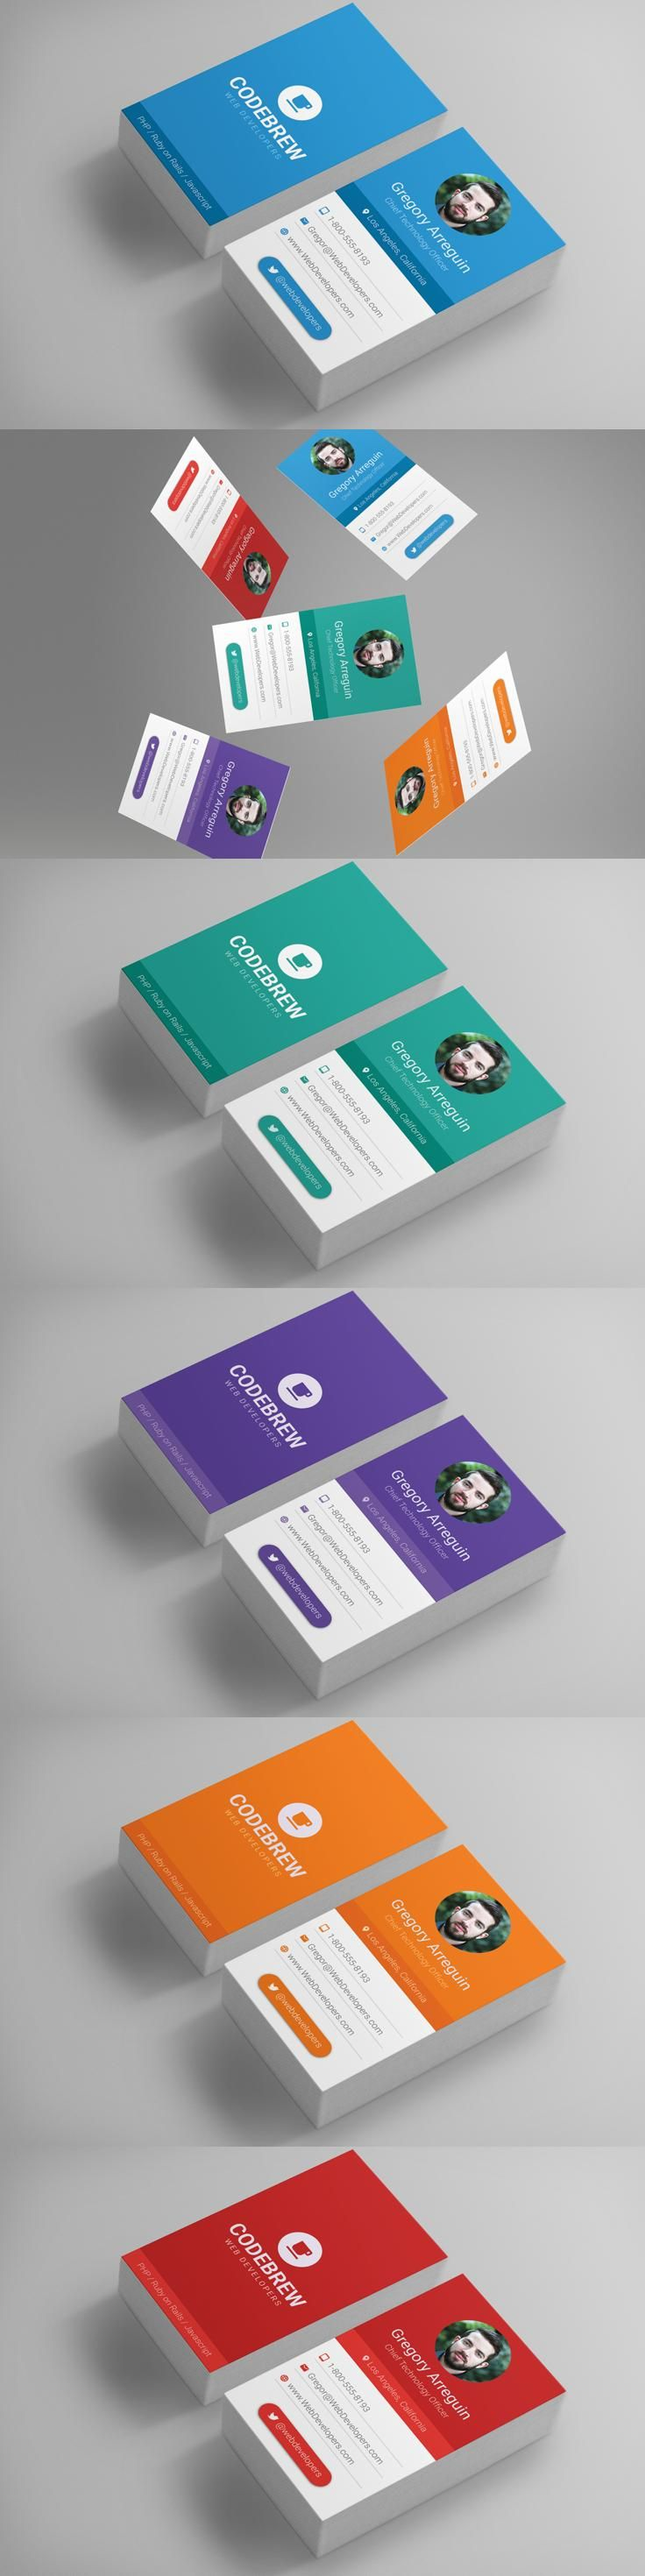 65 best cool business cards images on pinterest